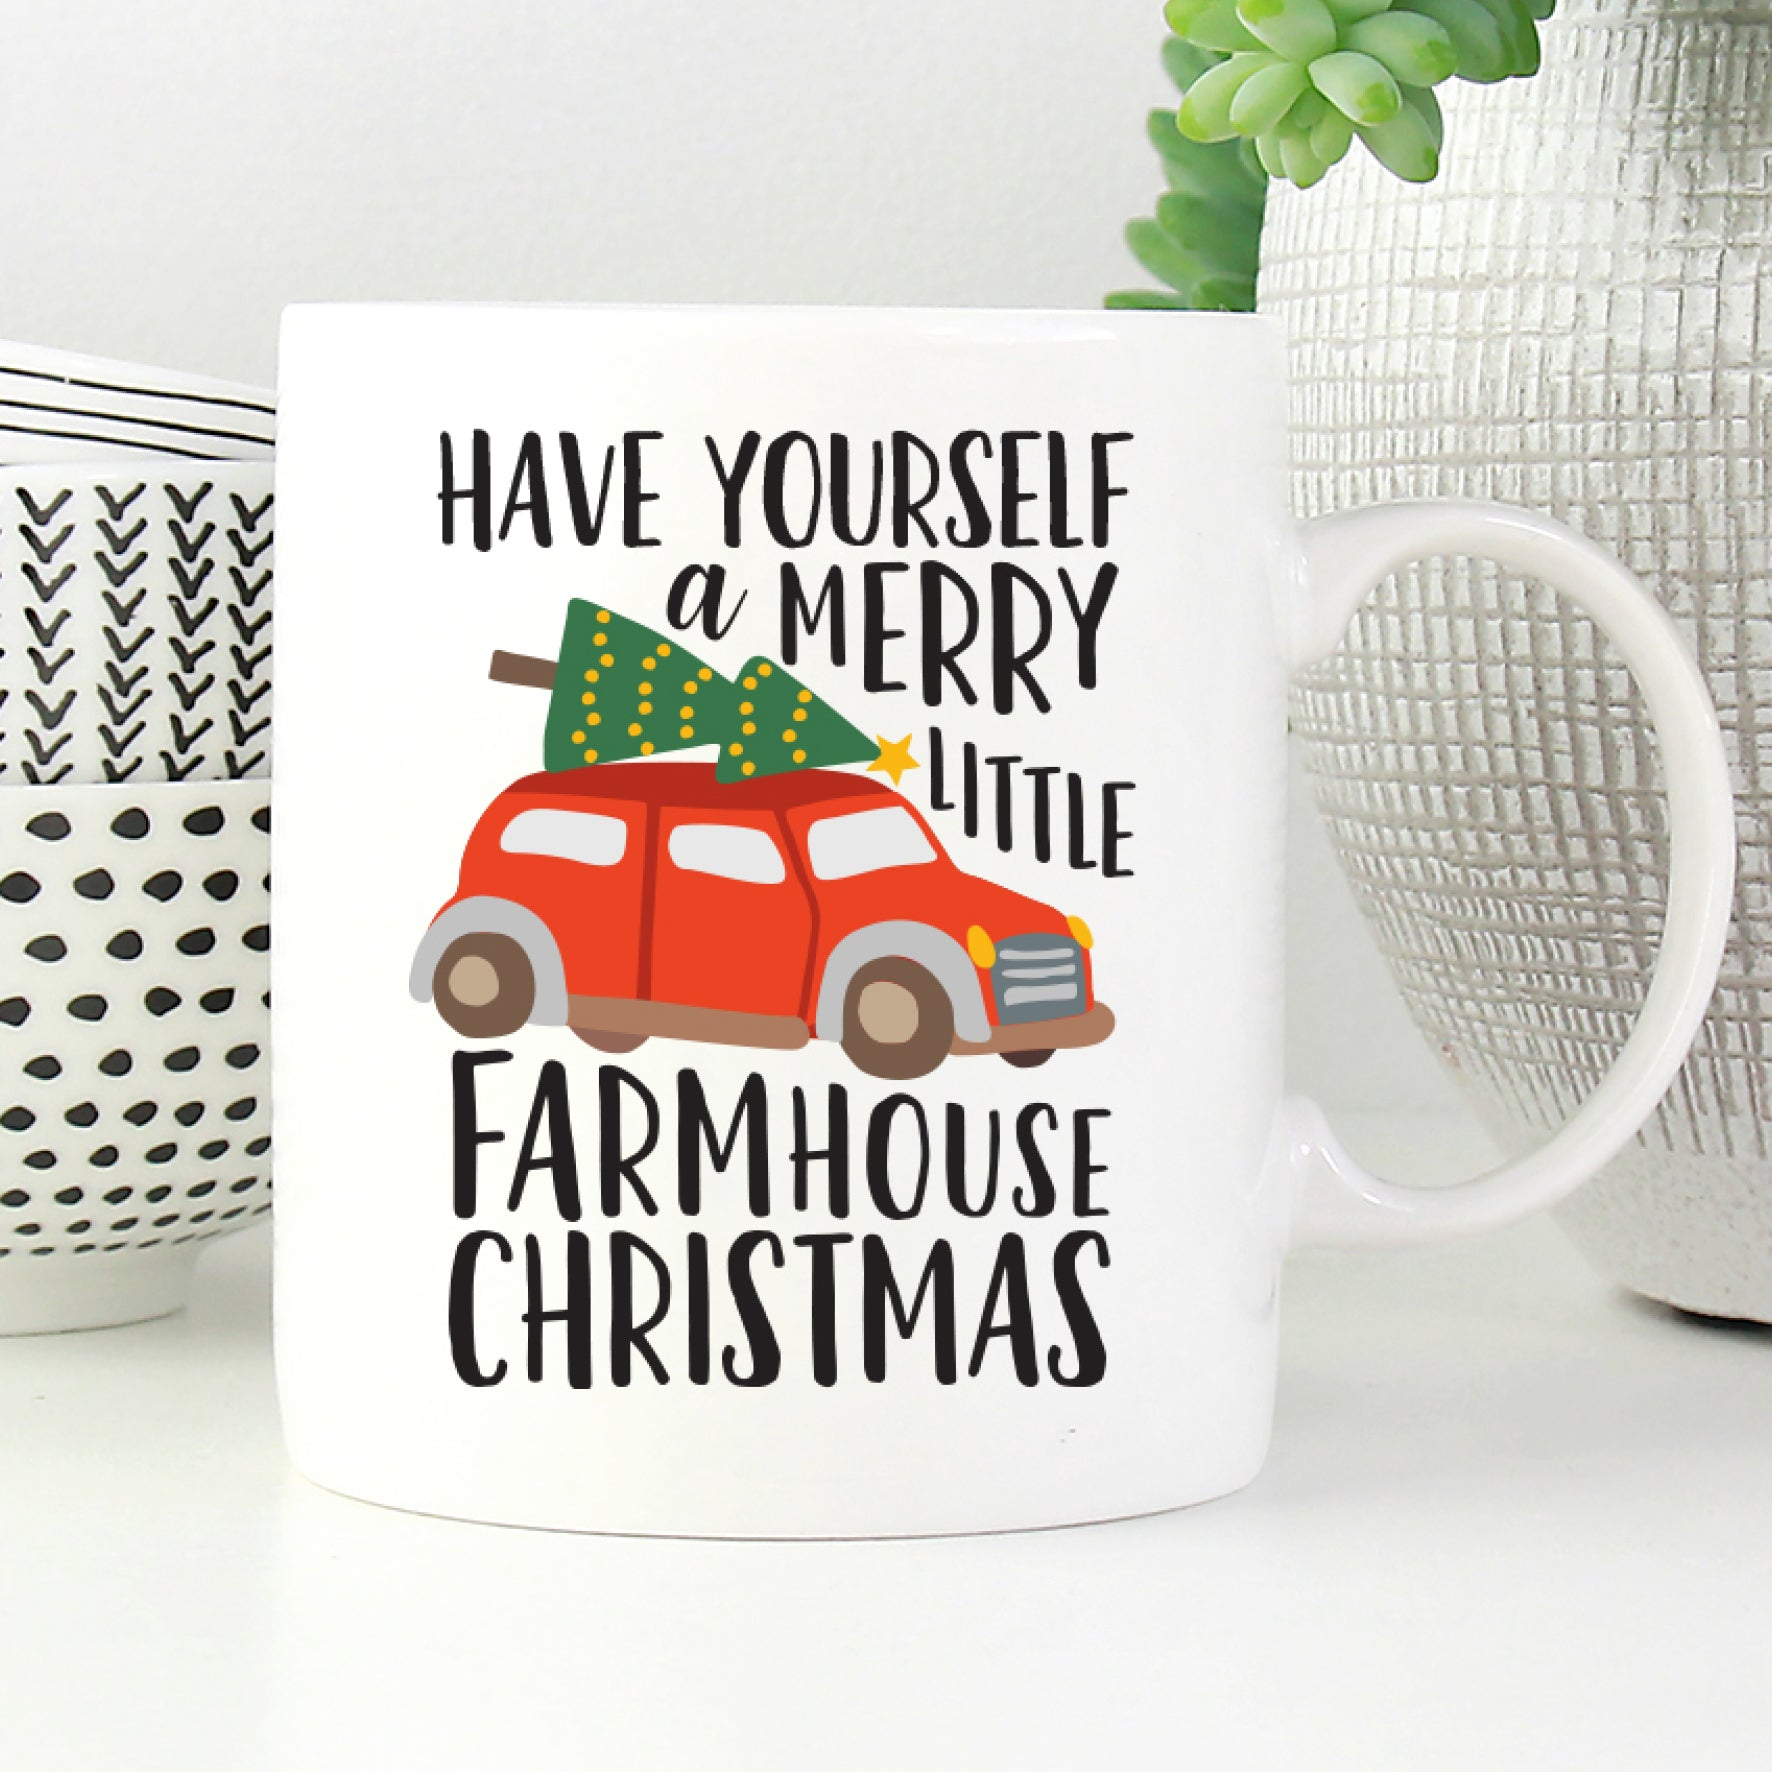 24+ Have Yourself A Farmhouse Christmas Image